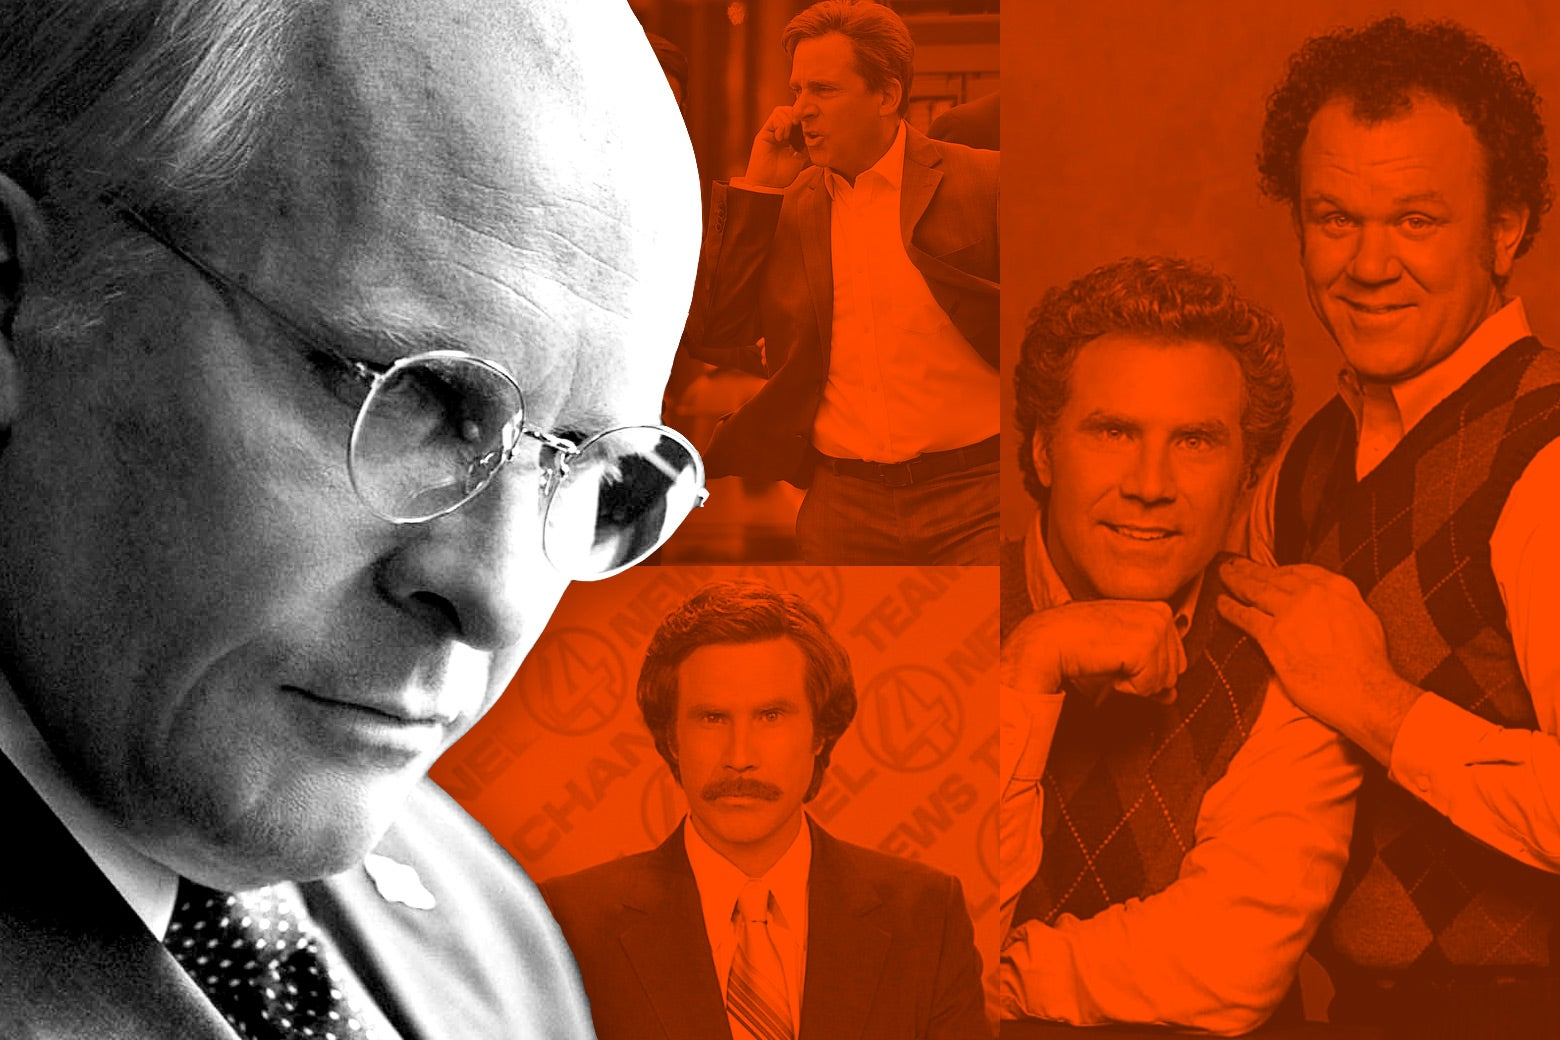 Photo illustration of various Adam McKay films, including Christian Bale as Dick Cheney, Anchorman, and Step-Brothers